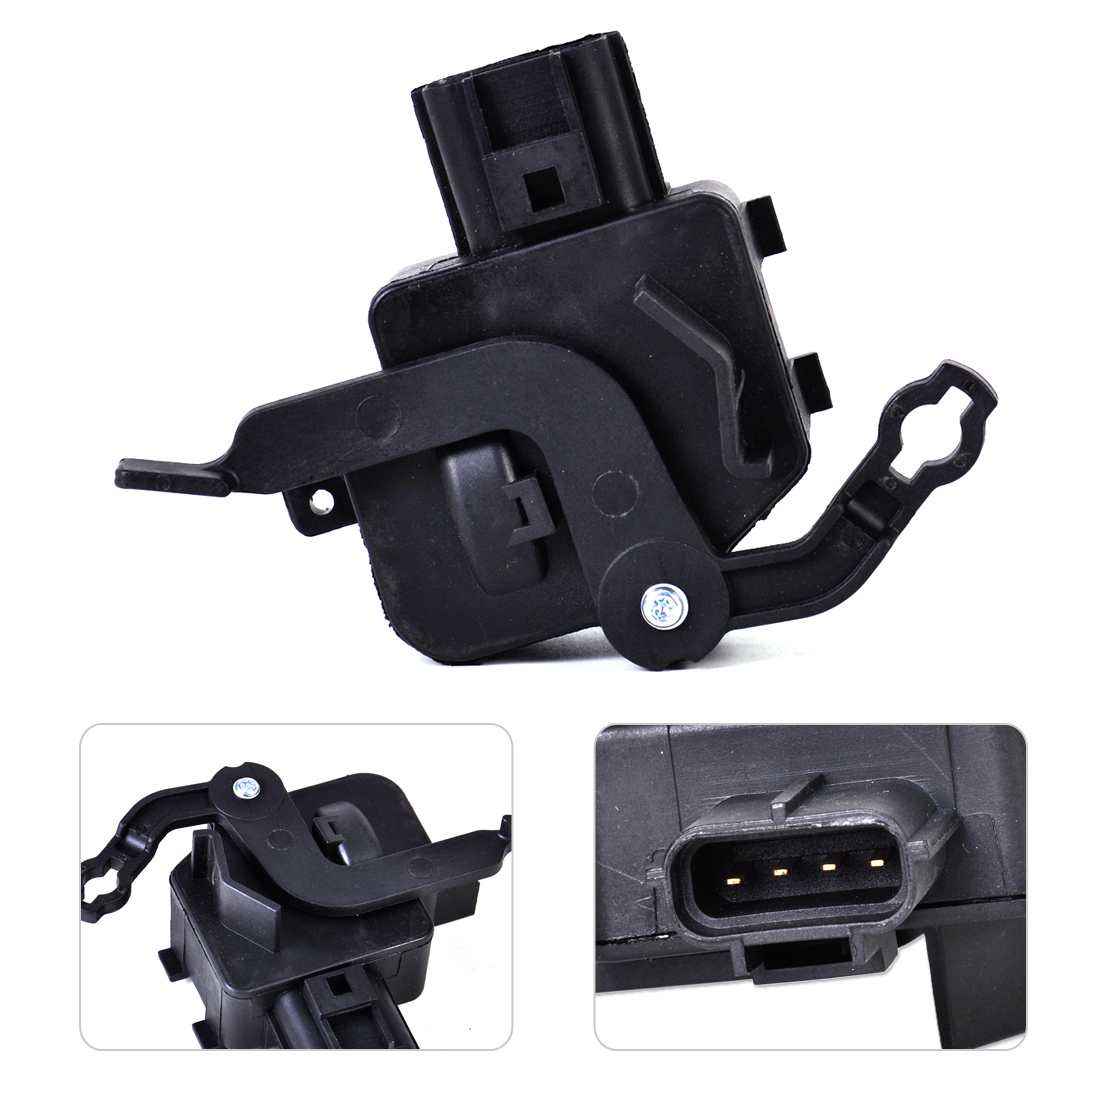 DWCX 5018479AB Tailgate Liftgate Hatch Door Lock Actuator For Jeep Grand Cherokee 1999 2000 2001 2002 2003 2004